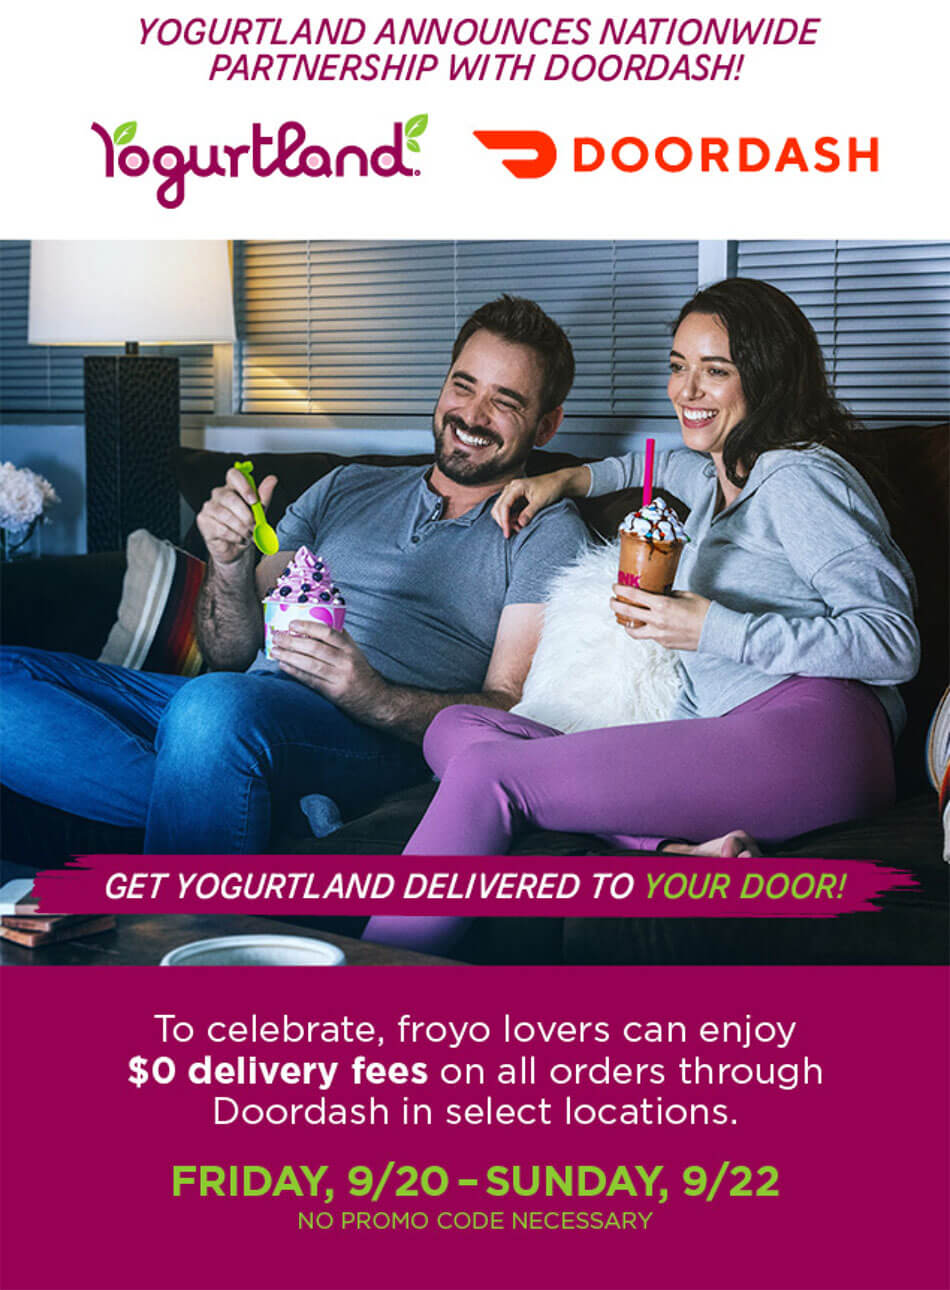 Yogurtland announces nationwide partnership with Doordash! Get Yogurtland delivered to your door! To celebrate, froyo lovers can enjoy $0 delivery fees on all orders through Doordash in select locations: Friday, September 20th - Sunday, September 22nd. No promo code necessary.